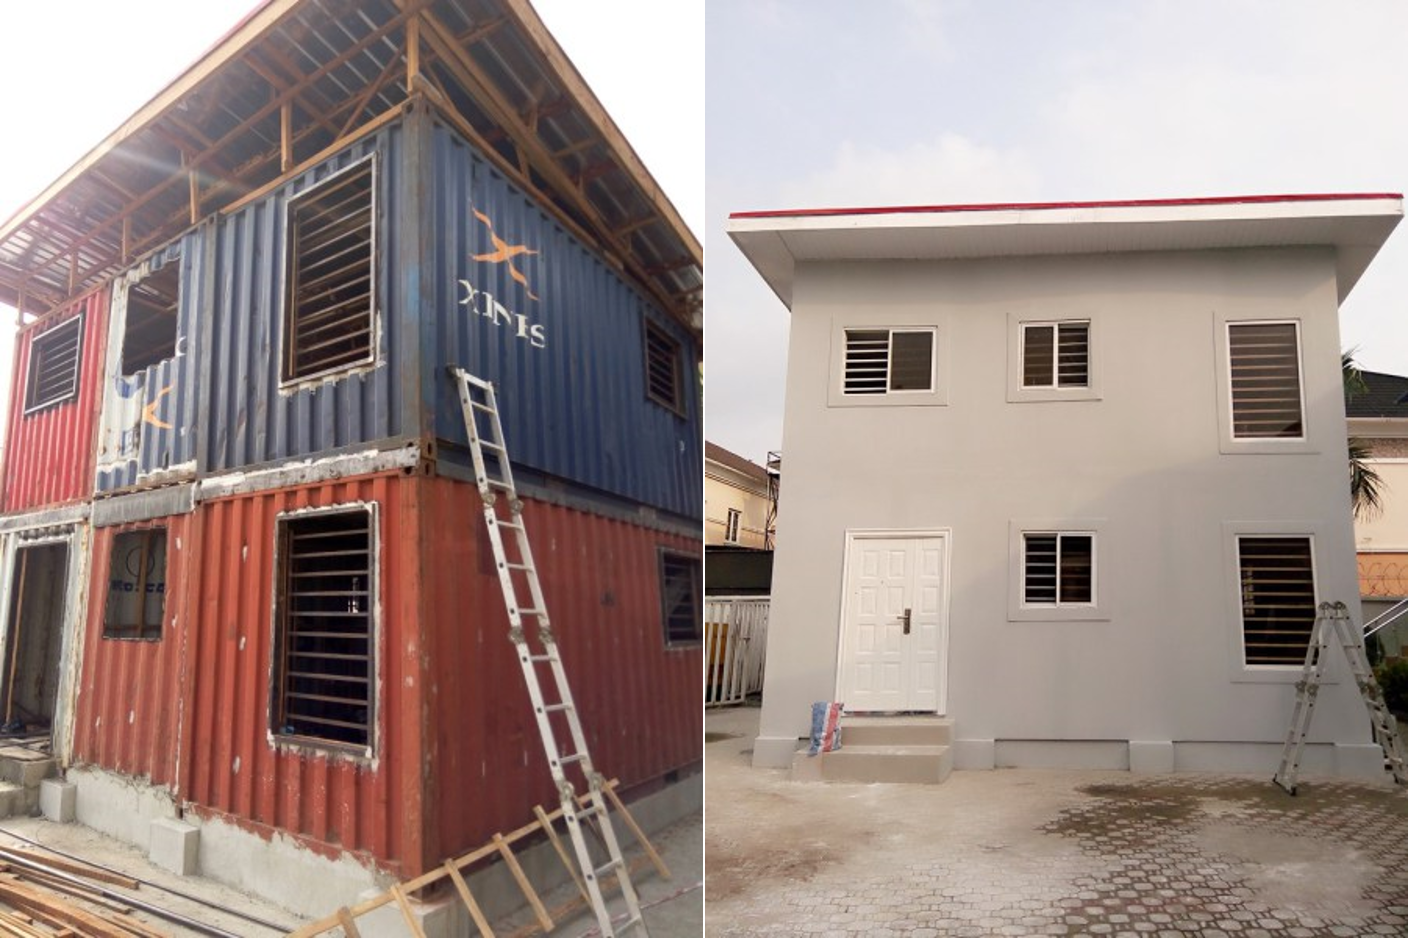 innovative company uses shipping containers to build houses in nigeria